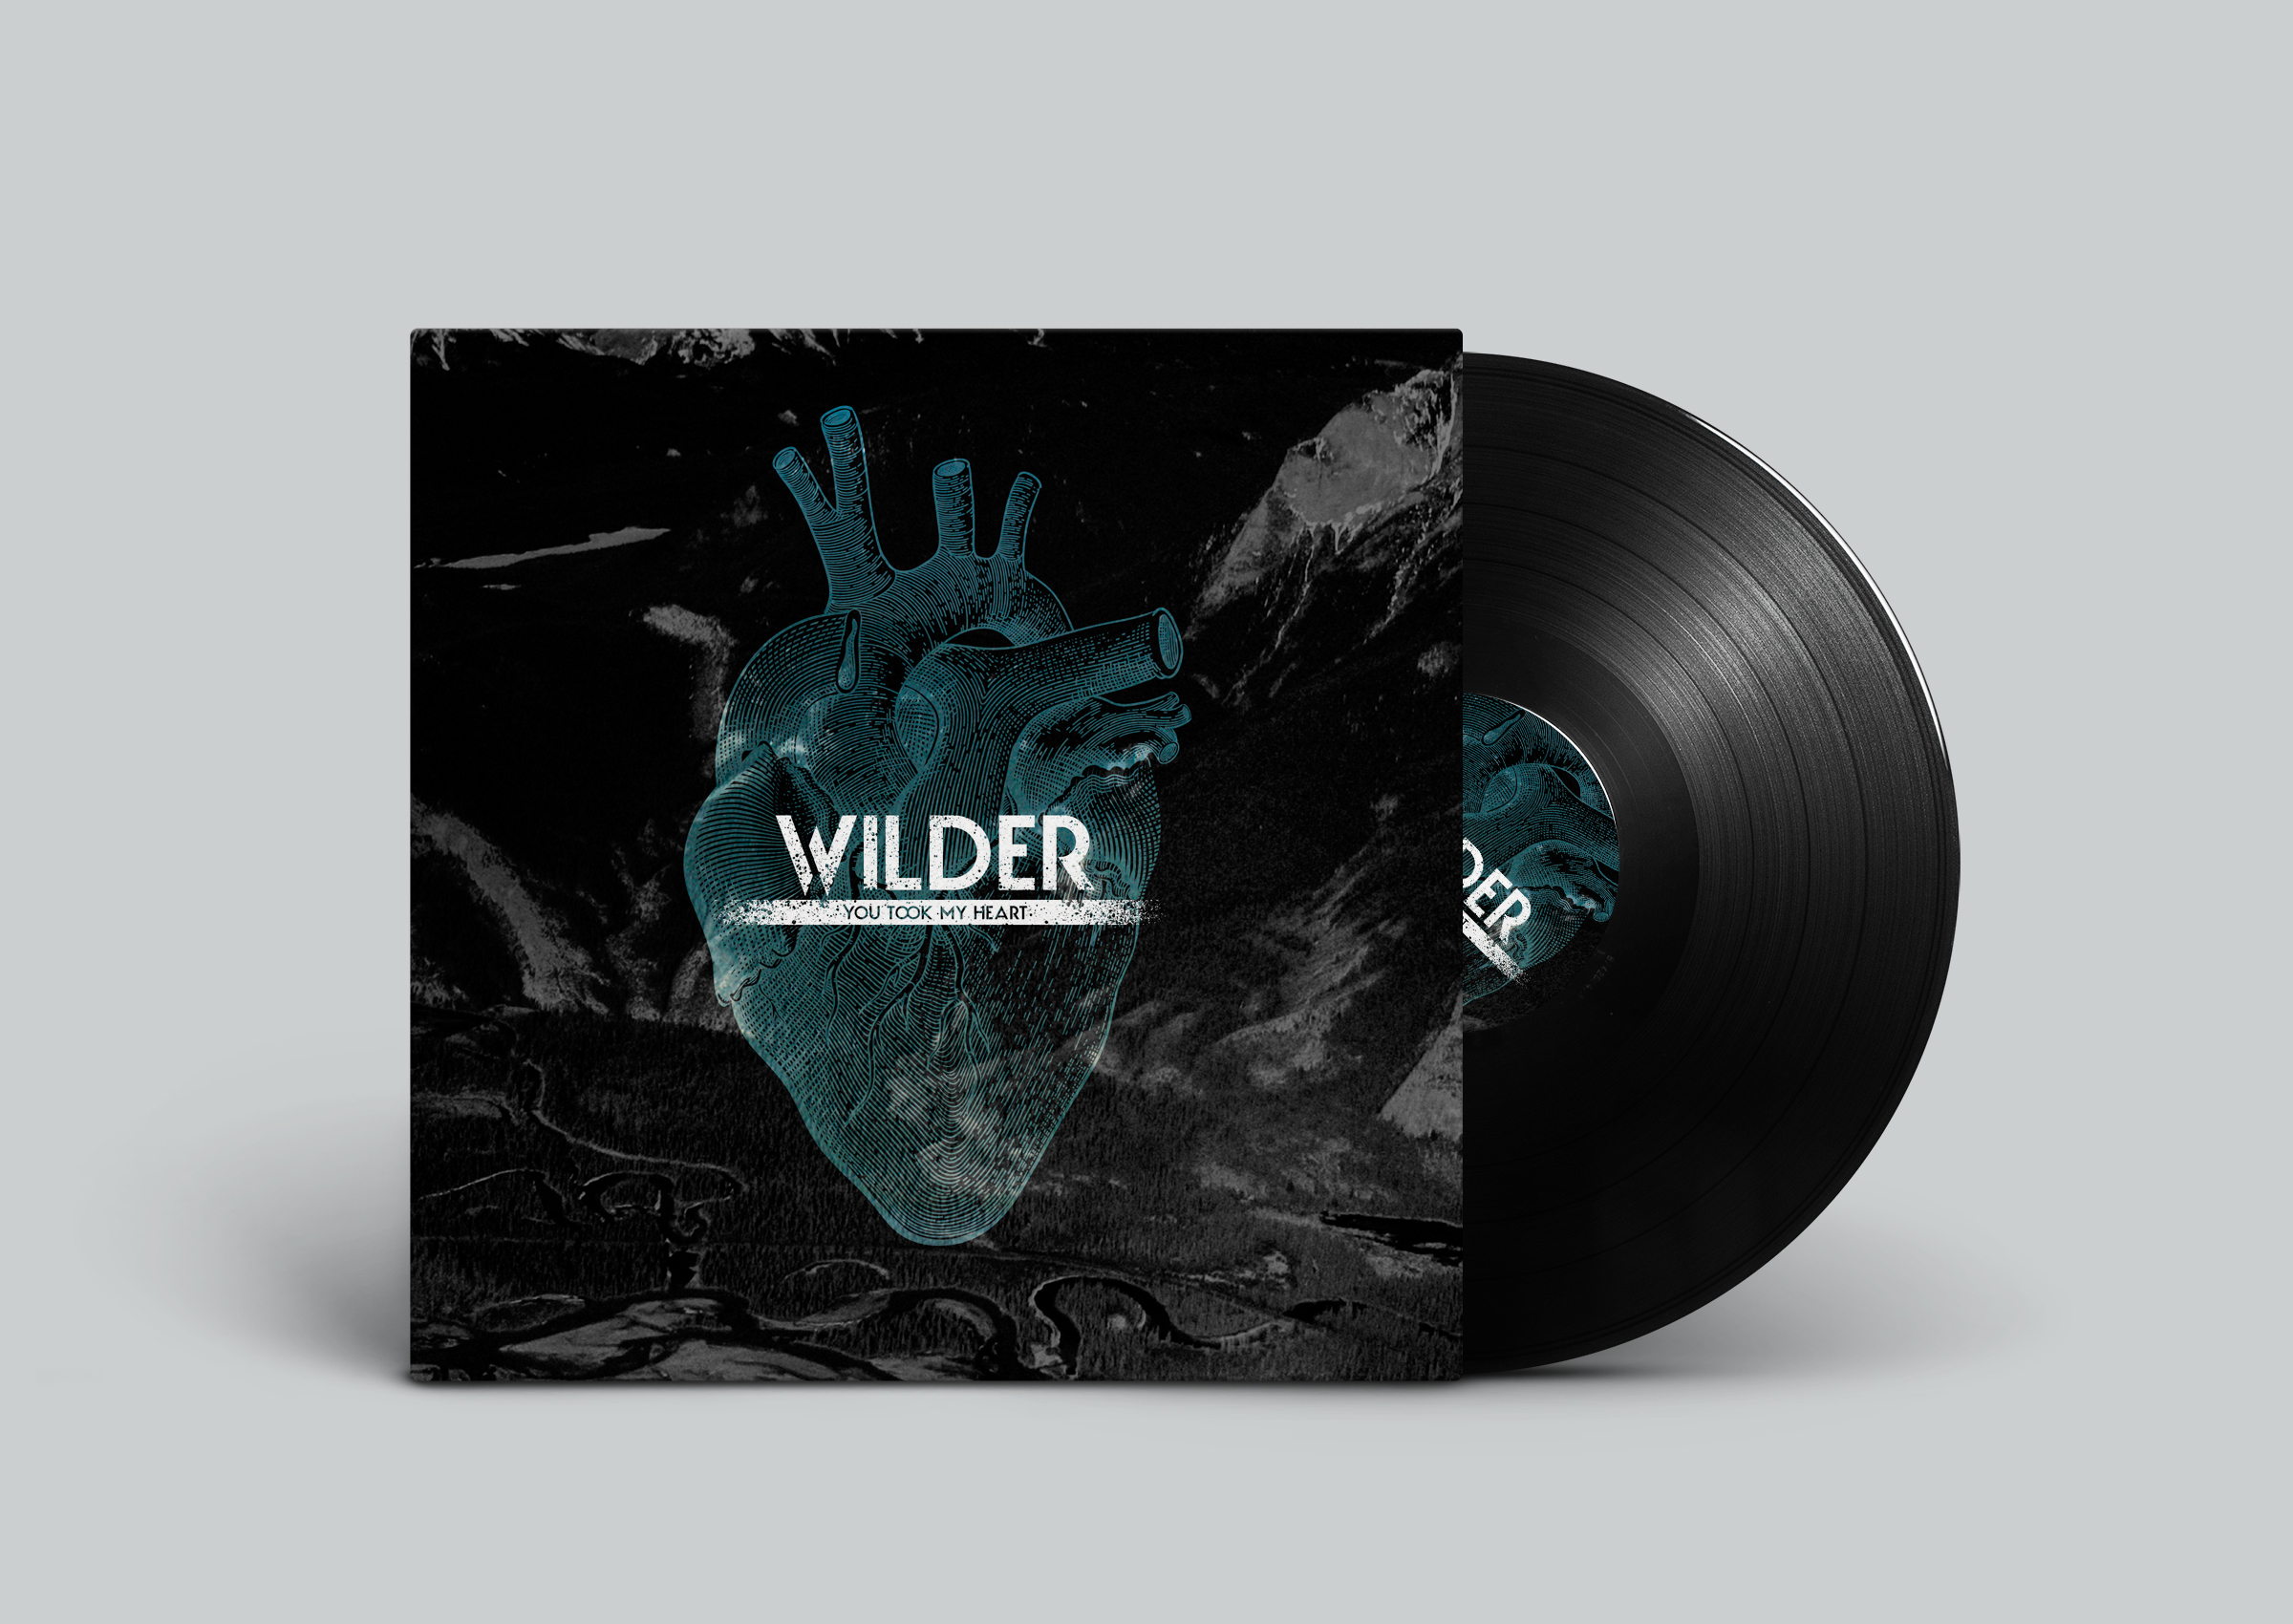 Wilder-You-took-my-heart-Vinyl-Record